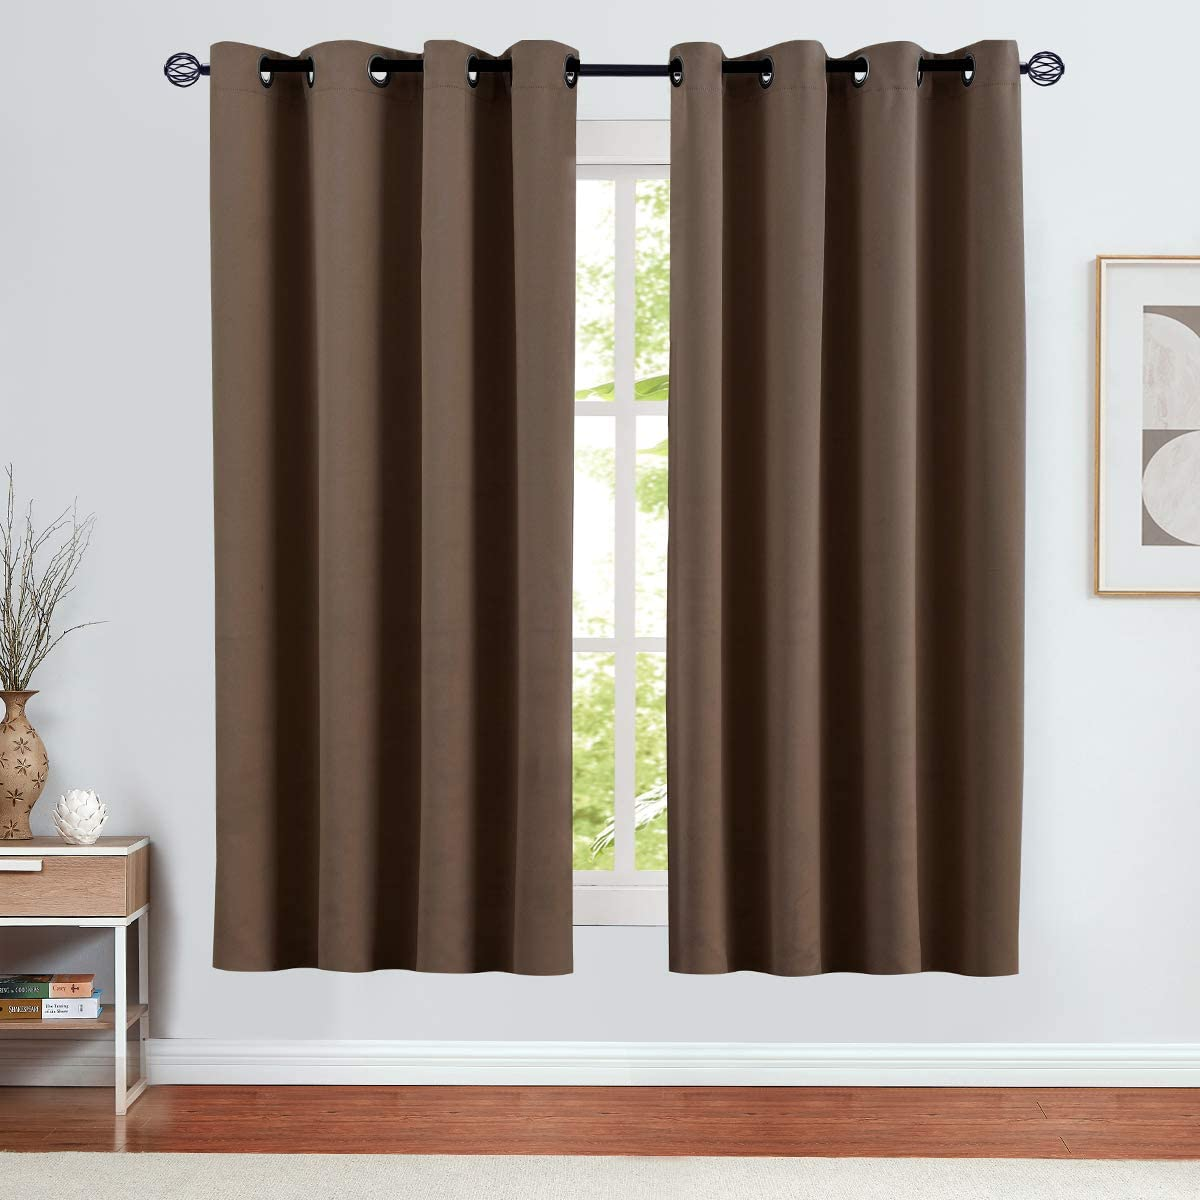 Vangao Room Darkening Curtains 63 Treatment inches Sale special Sale item price Window Length